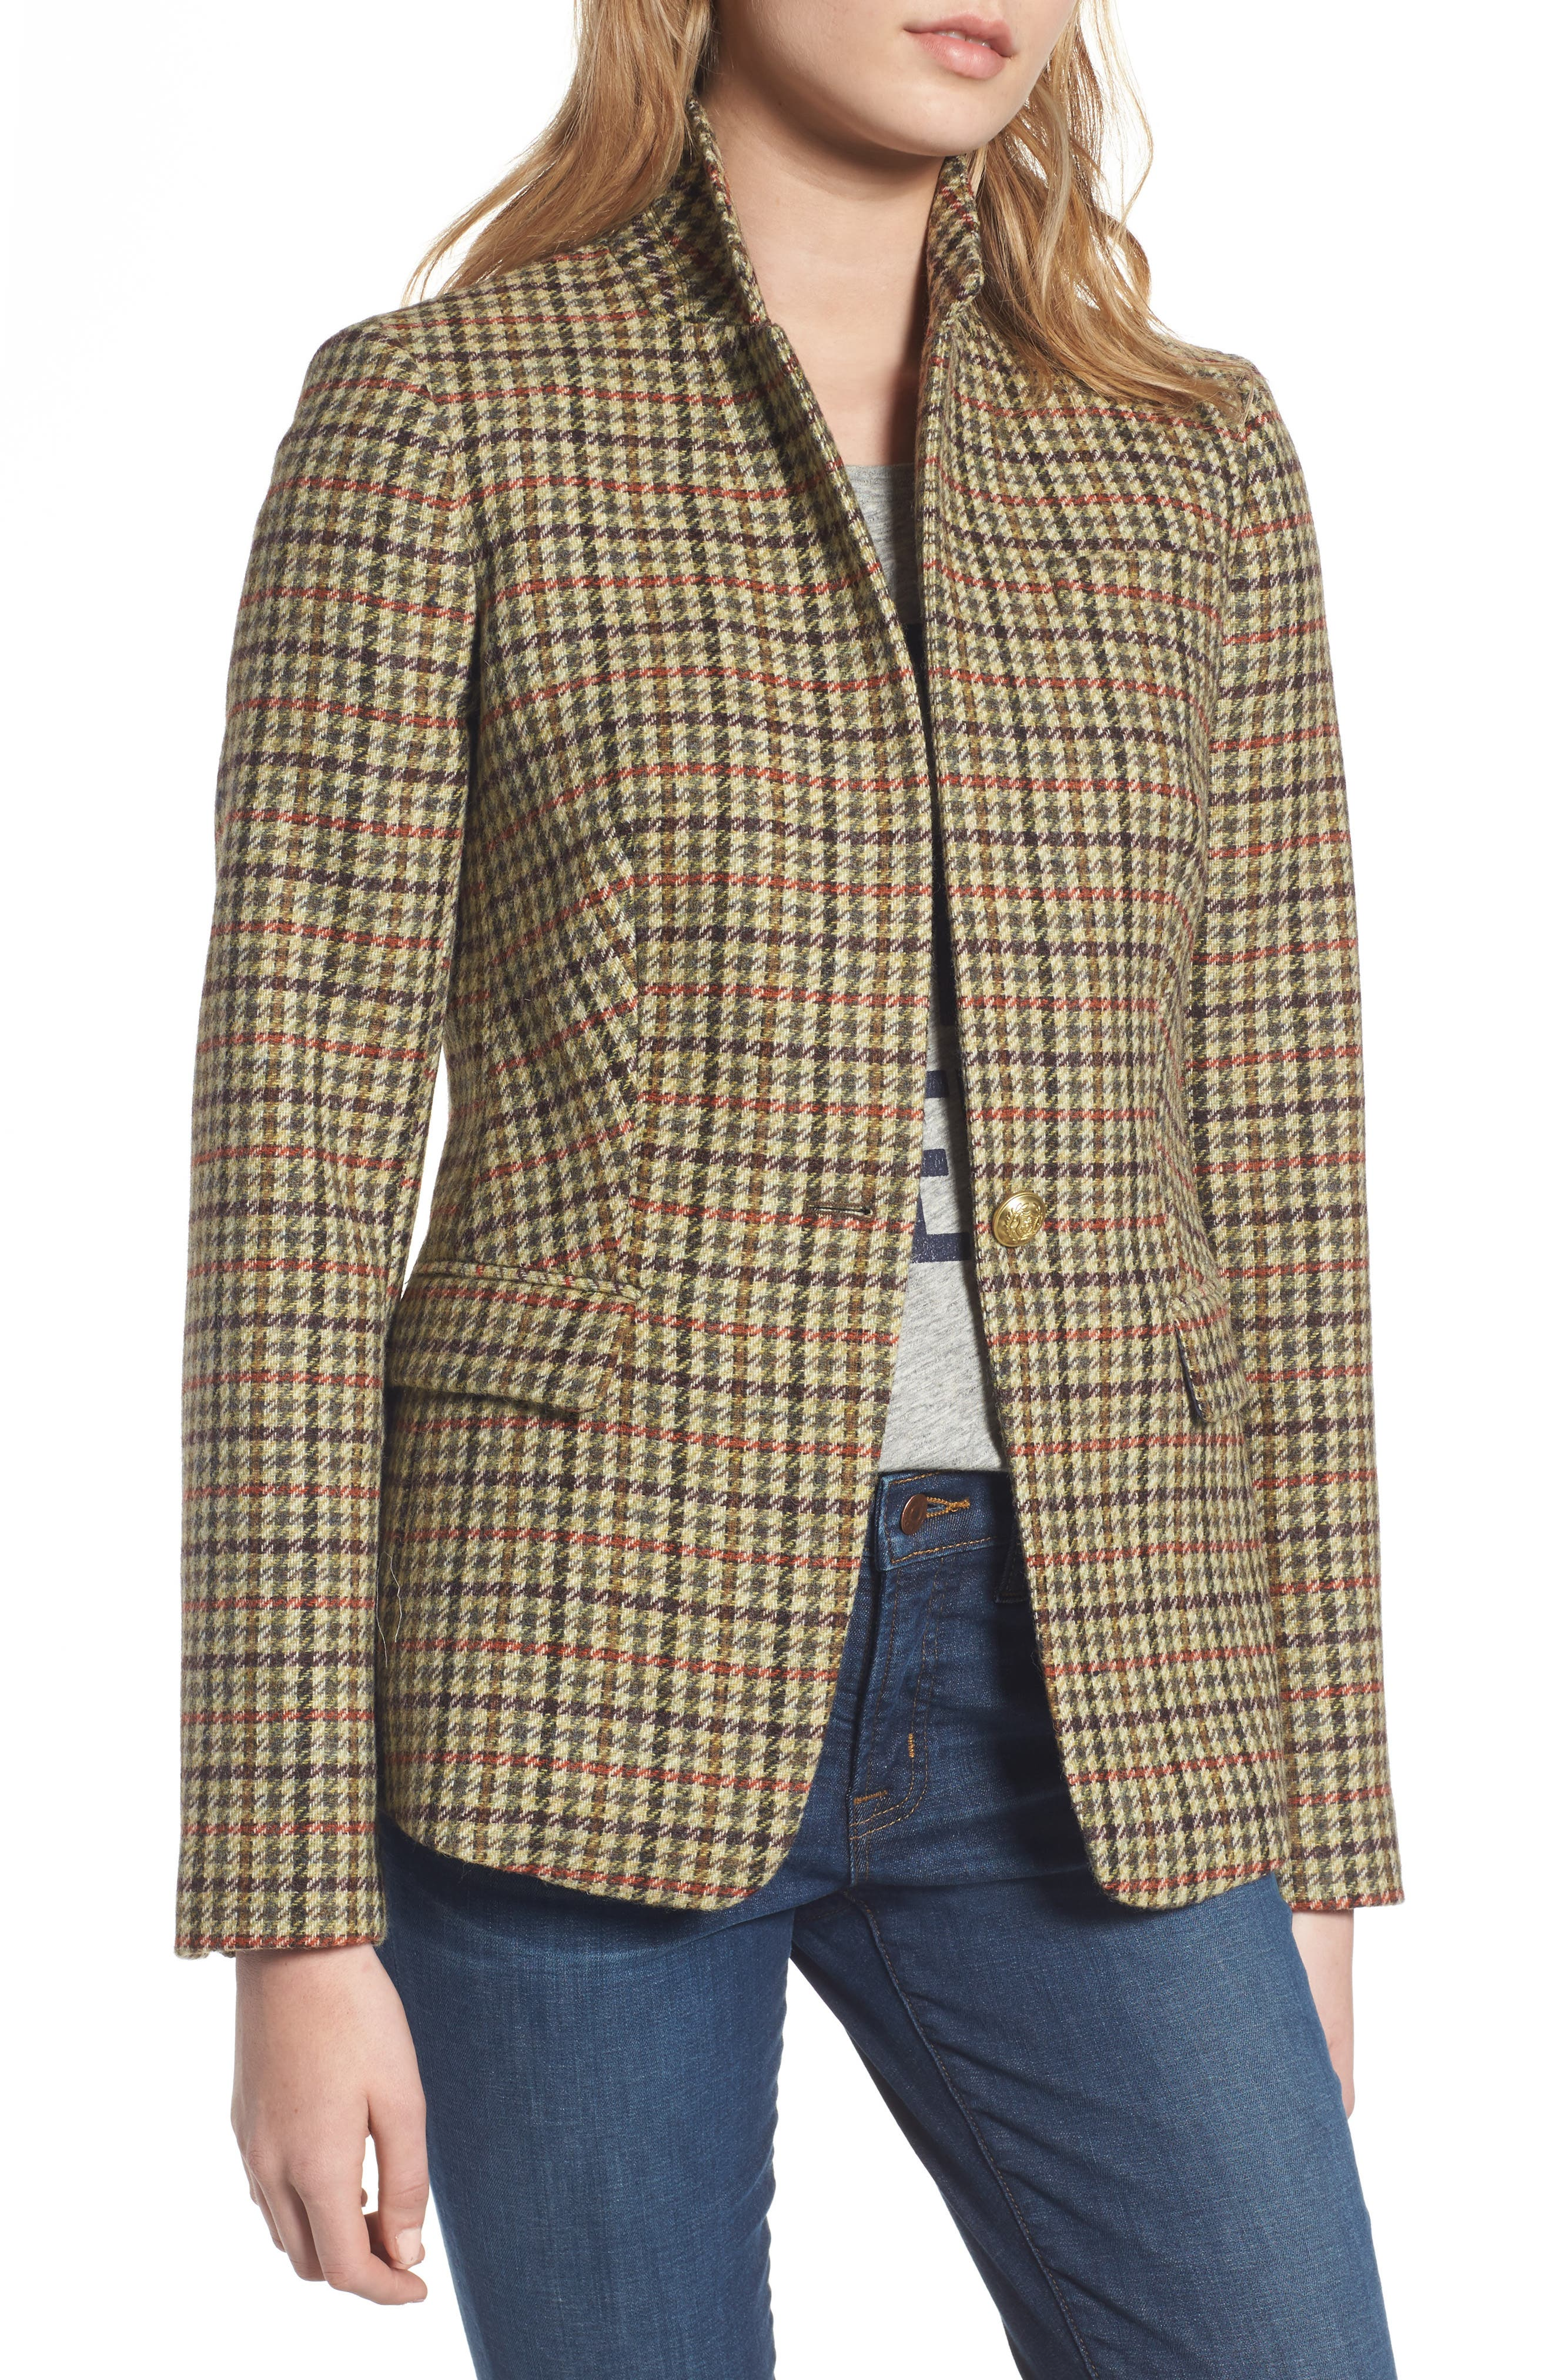 Alternate Image 1 Selected - J.Crew Regent Houndstooth Plaid Blazer (Regular & Petite)